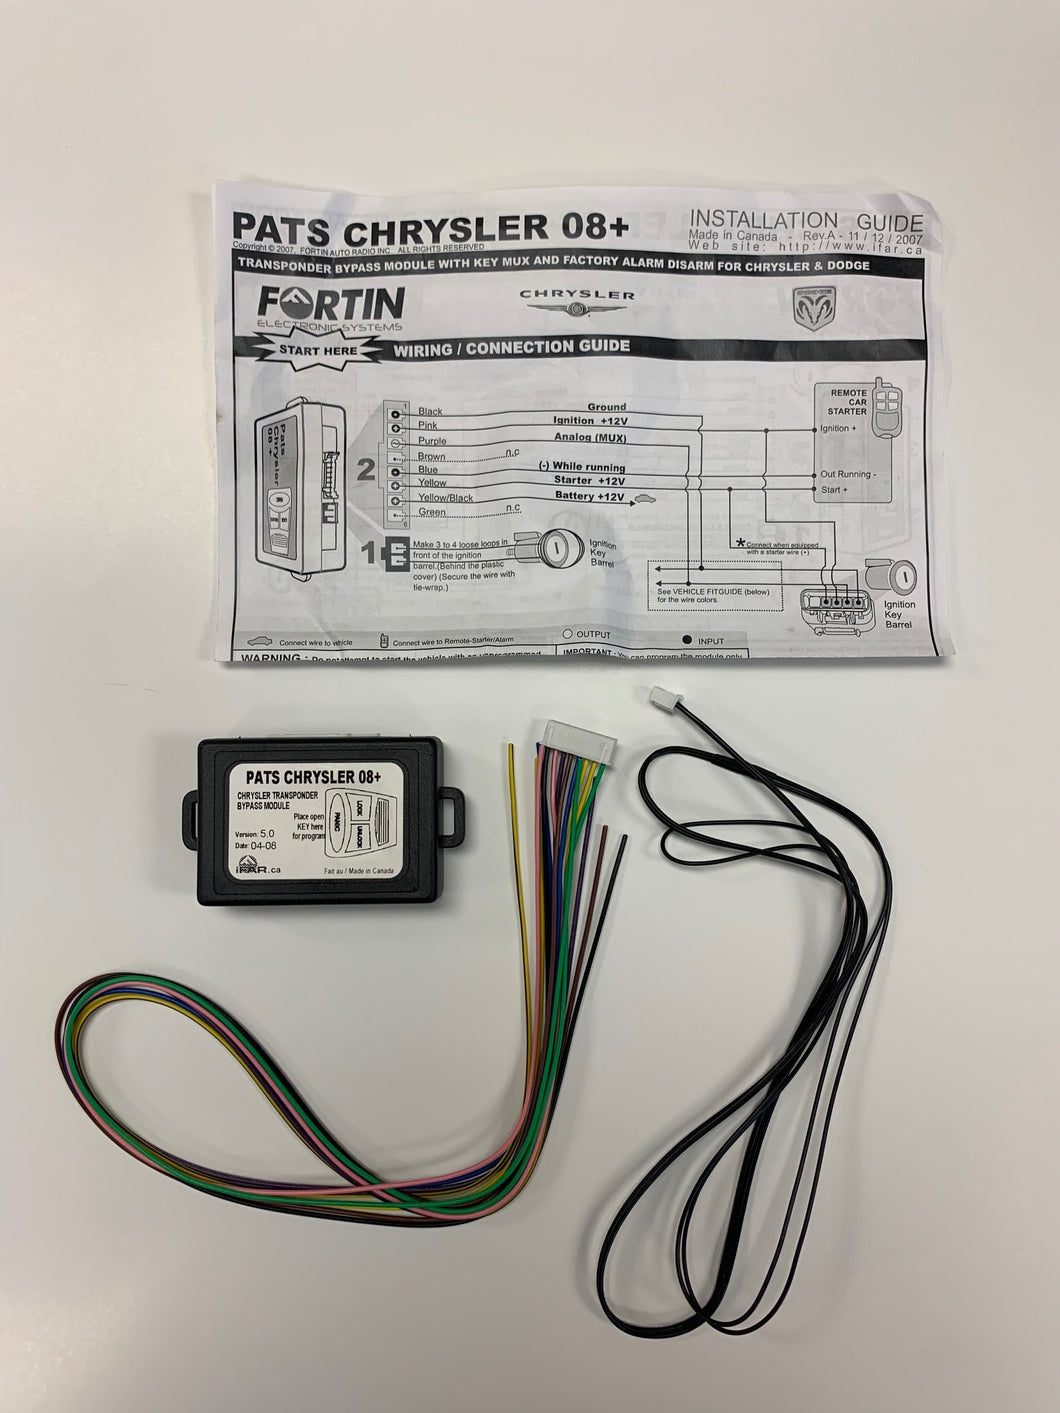 Fortin PATS-CHRYSLER-08+ - CHRYSLER BYPASS KIT